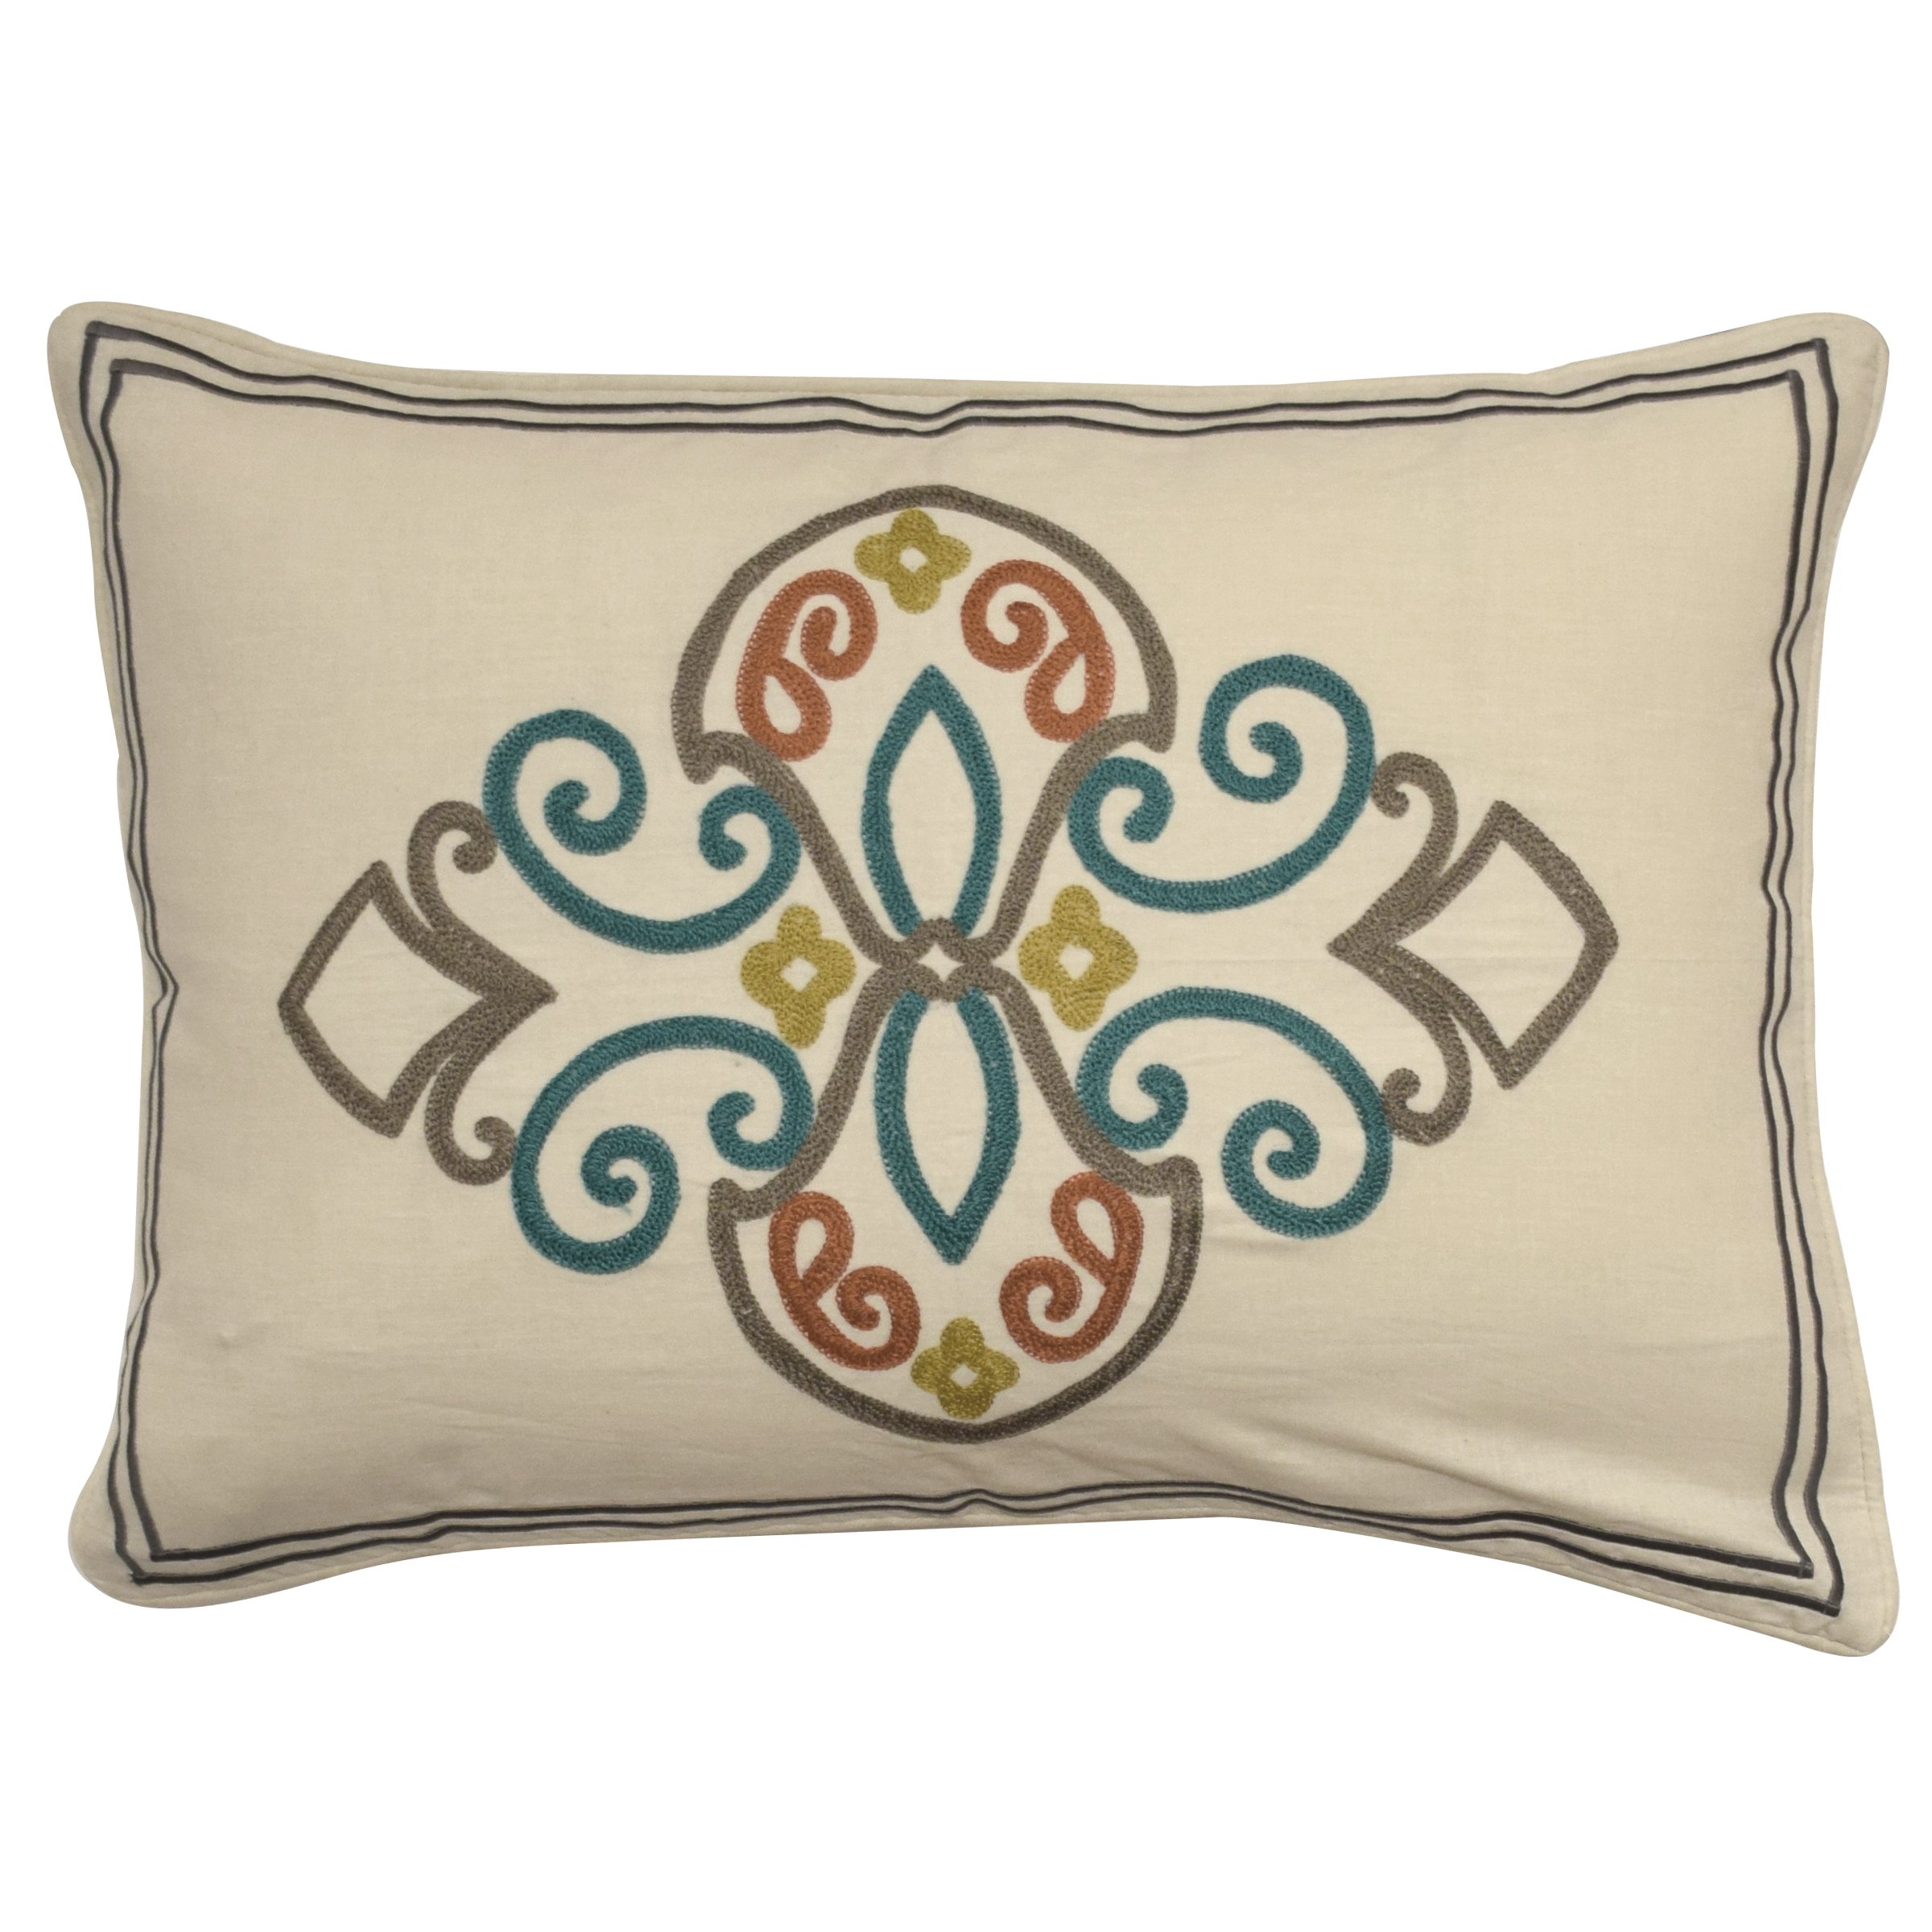 WAVERLY 16868014X020FST Boho Passage Embroidered Pillow, 14'' x 20'', Fiesta by WAVERLY